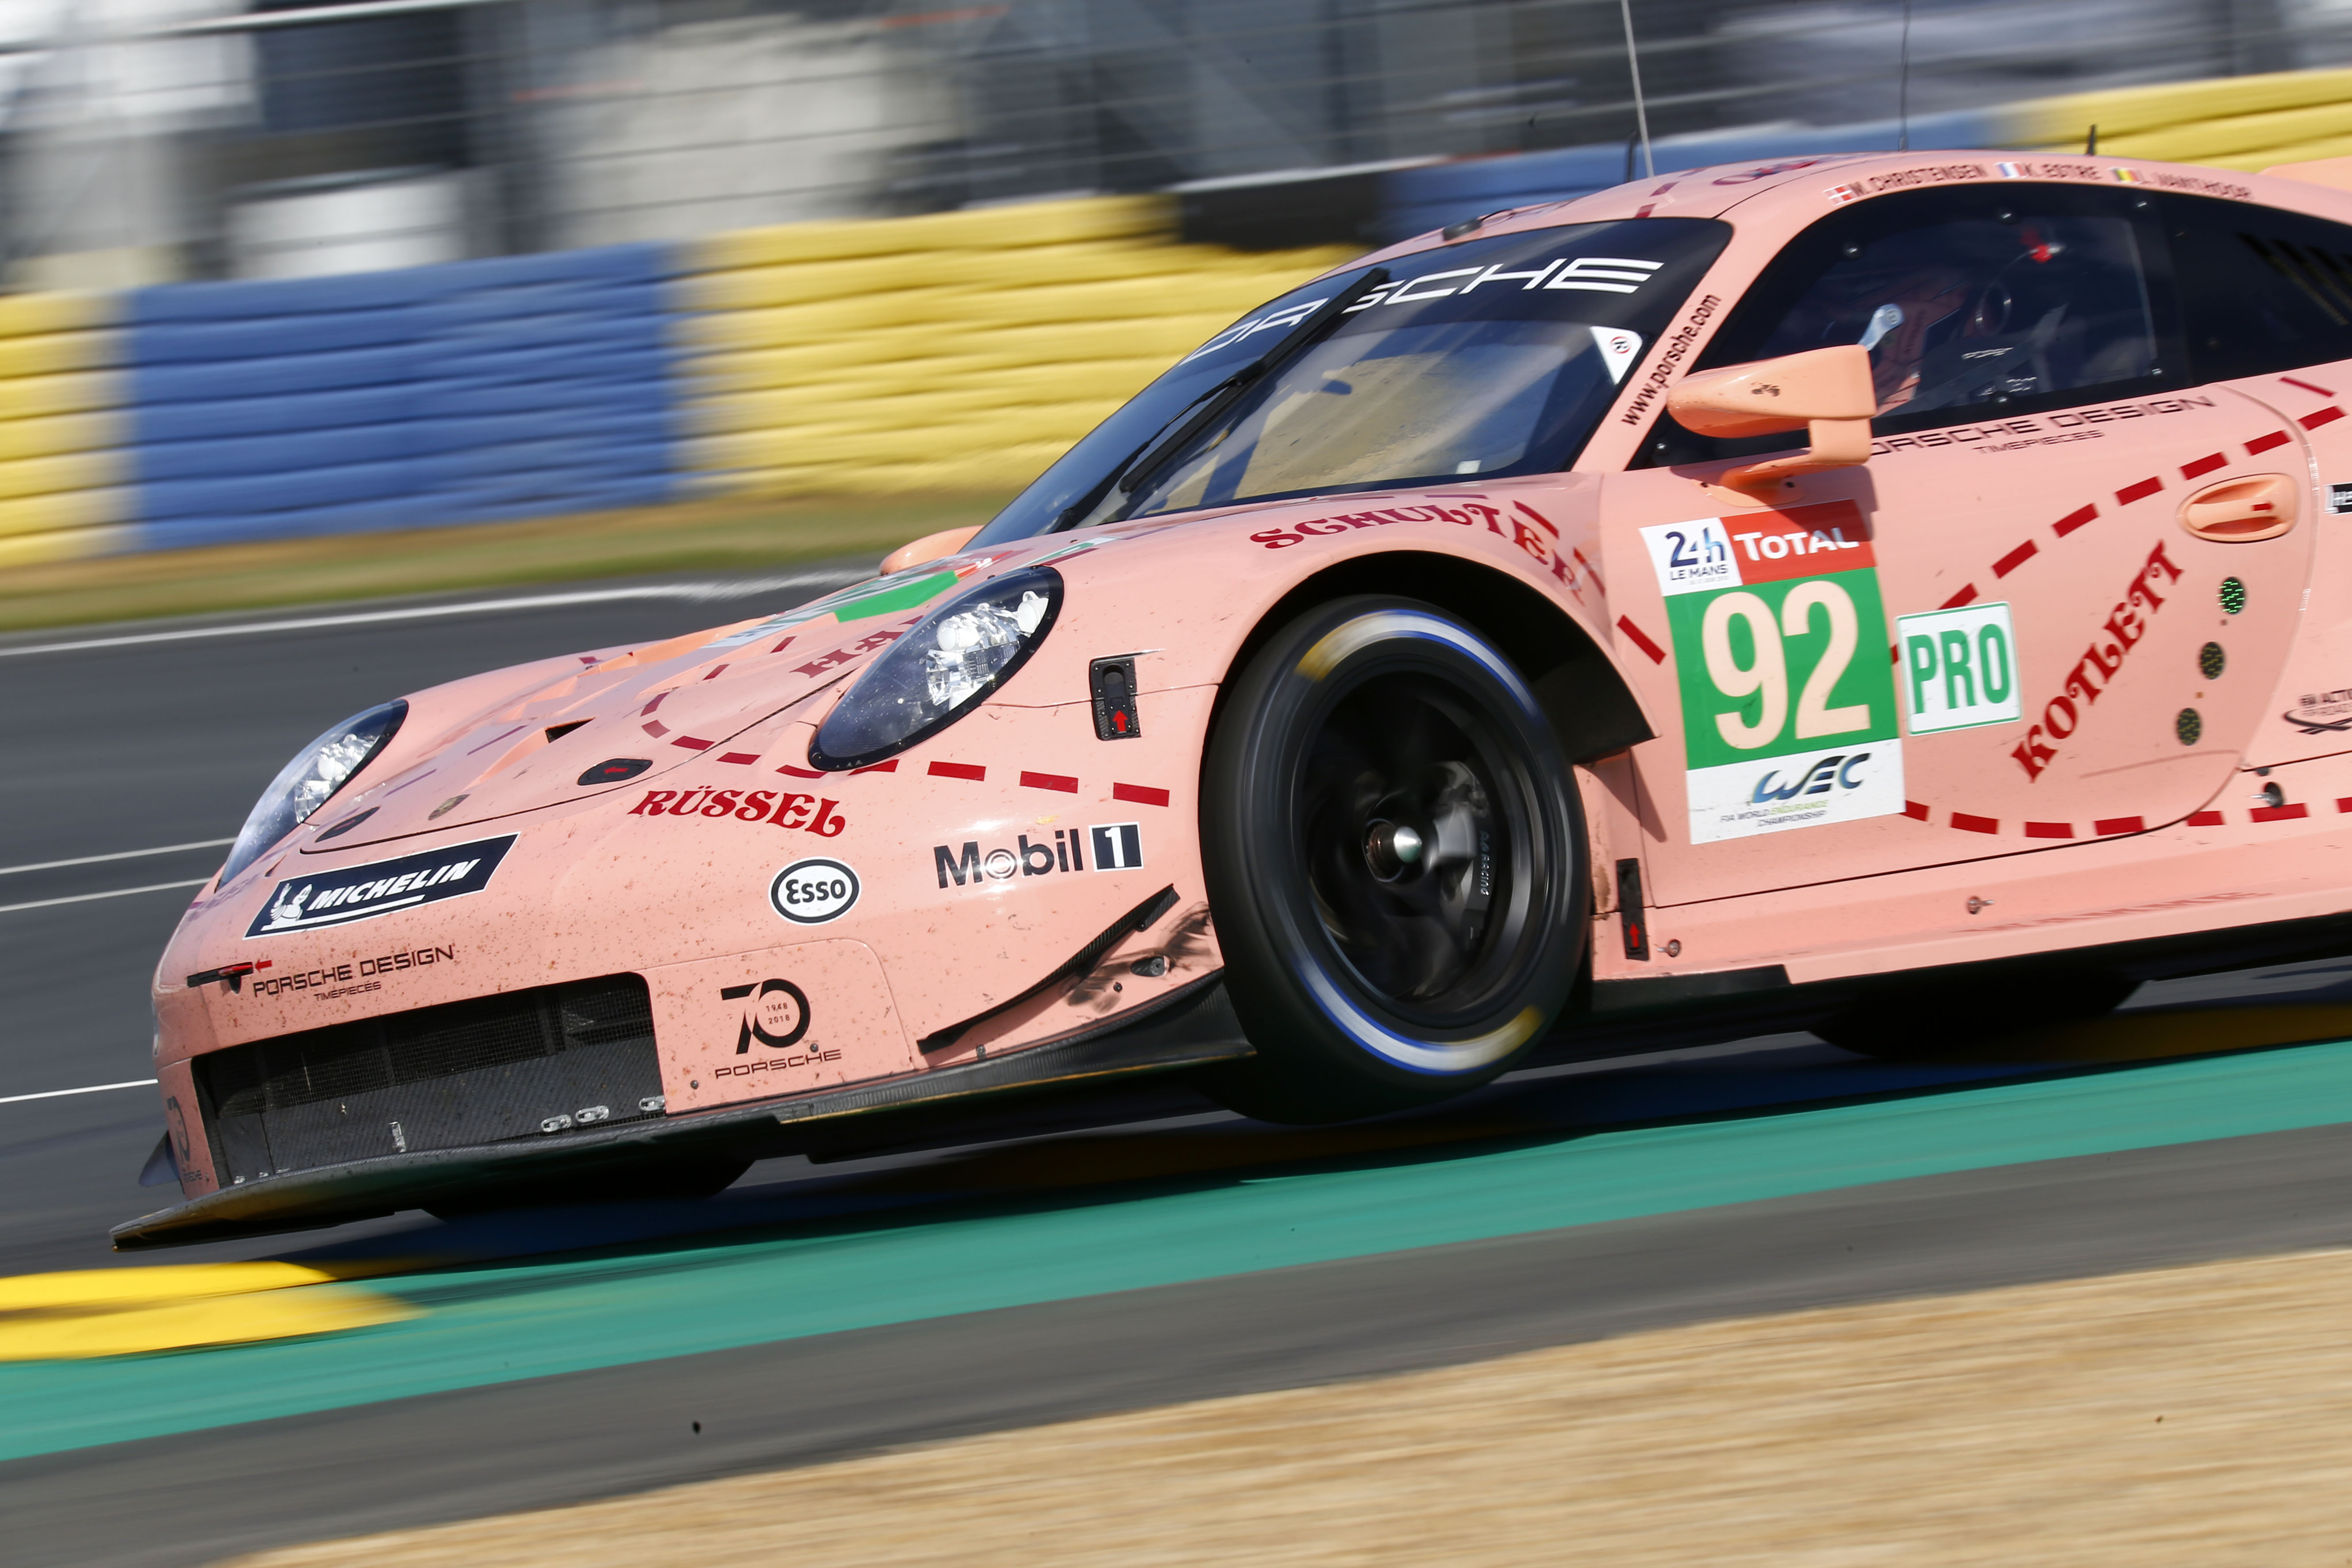 Double victory for Porsche at the 24 Hours of Le Mans